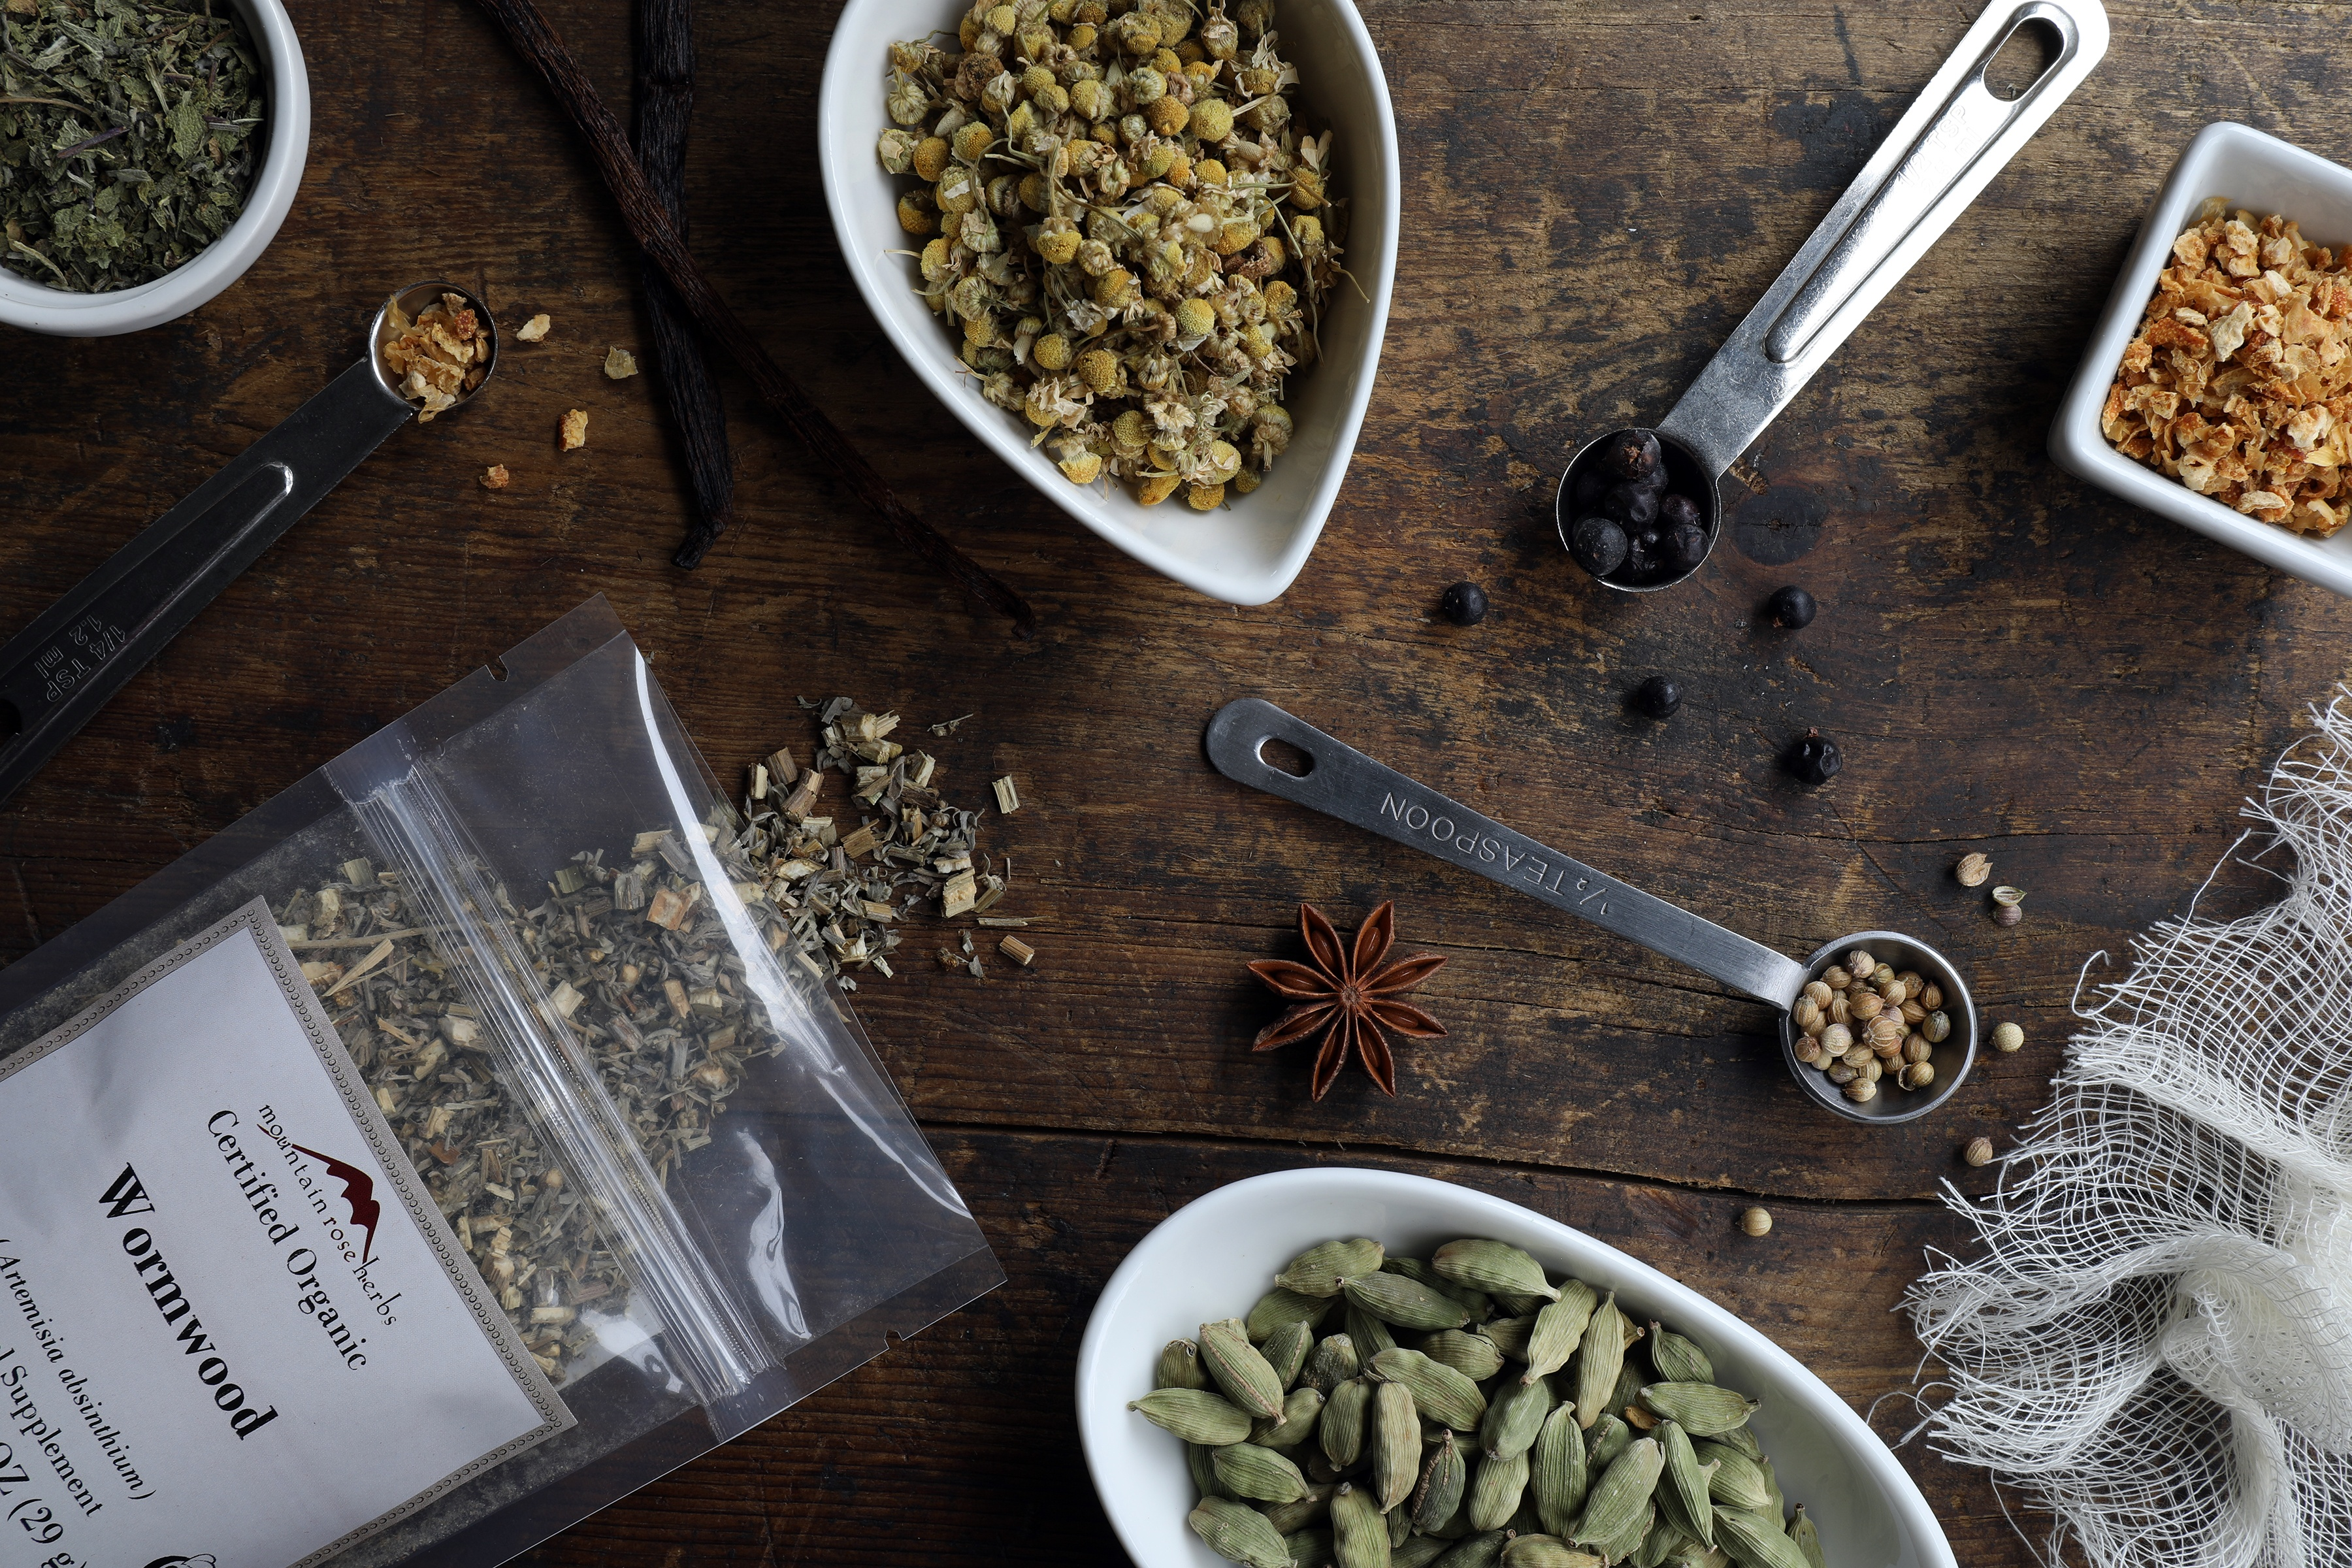 Ingredients for making homemade vermouth laying in bowls on counter including cardamom and wormwood and orange peel